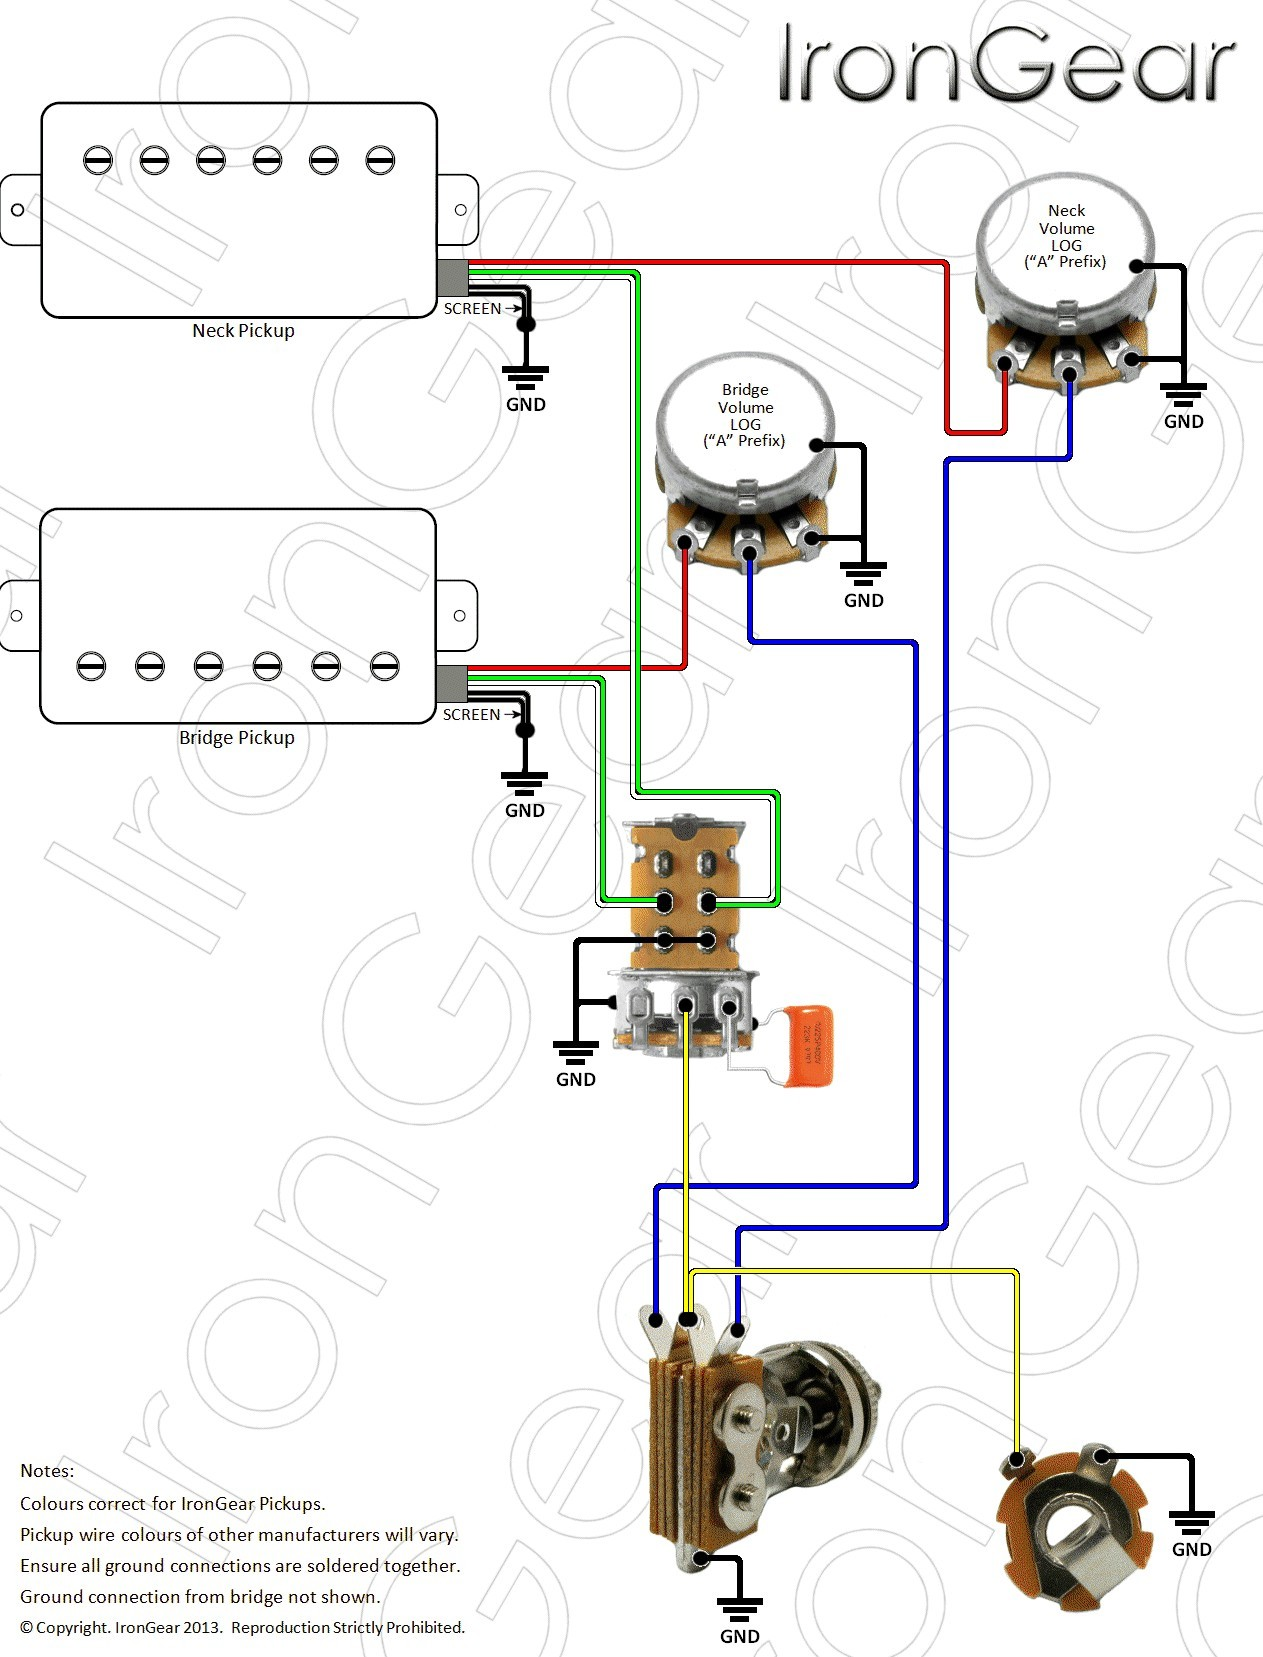 emg wiring diagram wiring diagram automotivewrg 8096] 1 volume 1 tone 2 humbucking emg active wirinemg guitar wiring diagrams 1